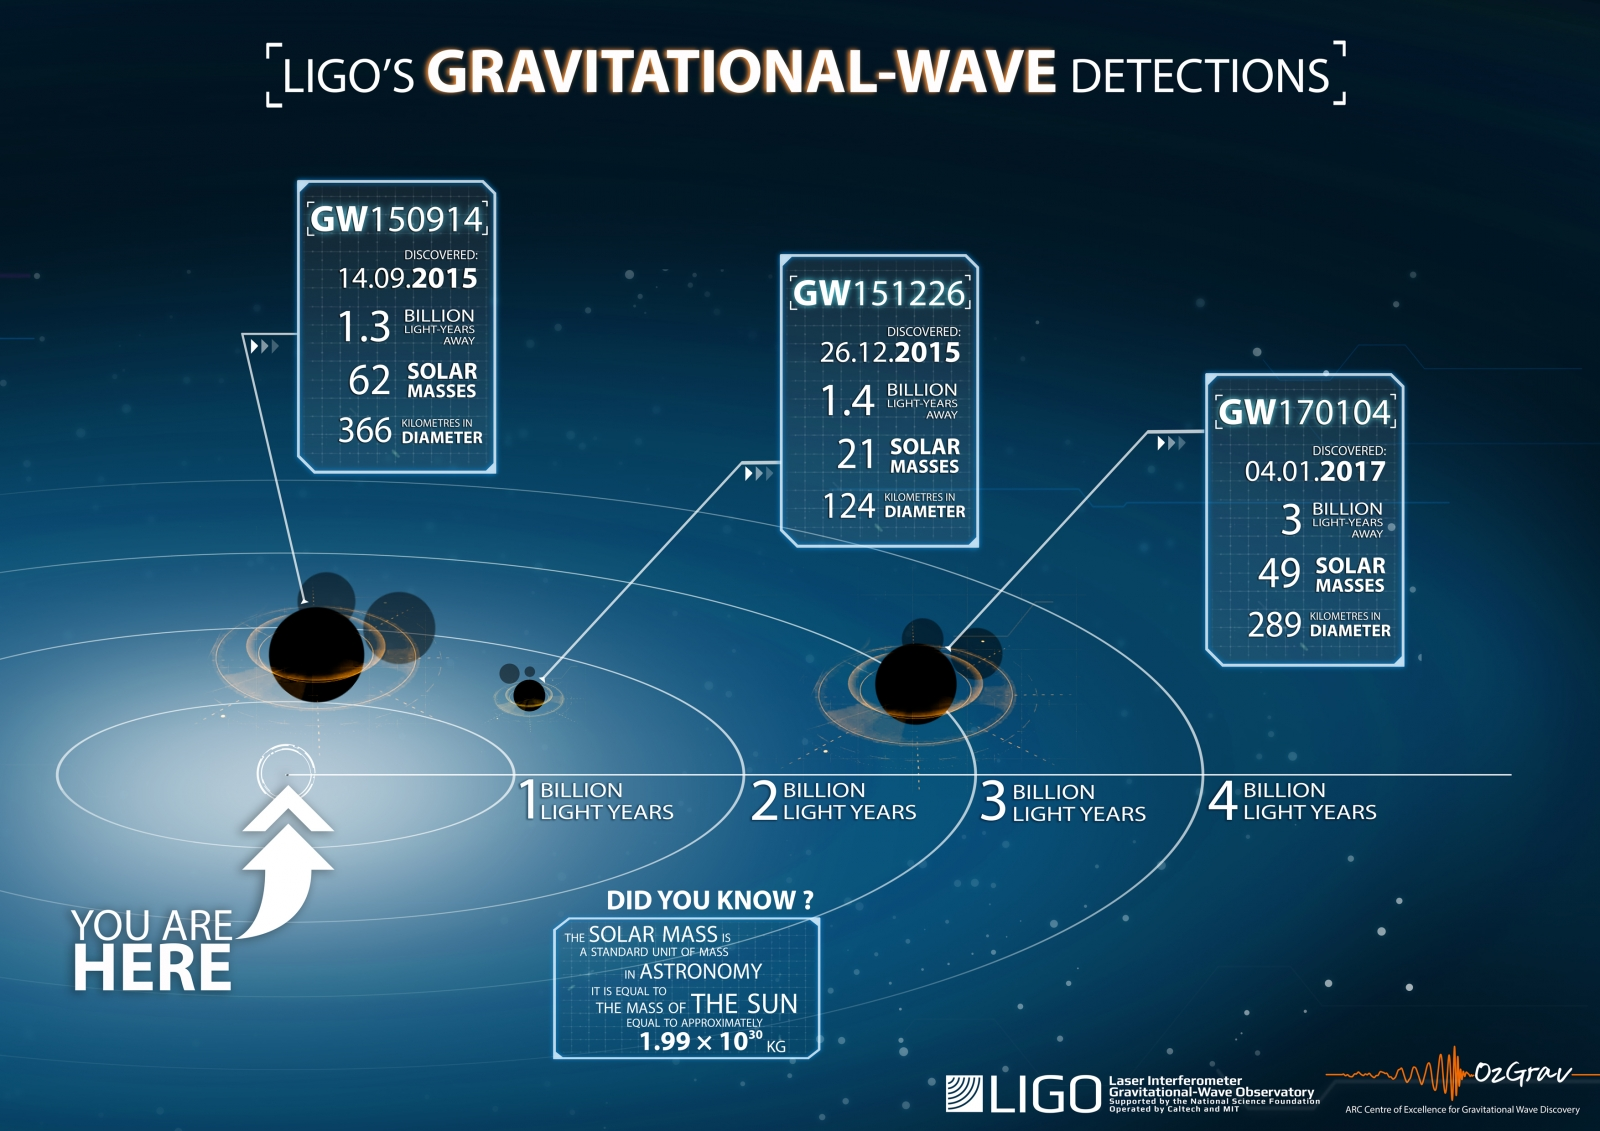 Third gravitational wave detection gives hints on dark matter and black holes